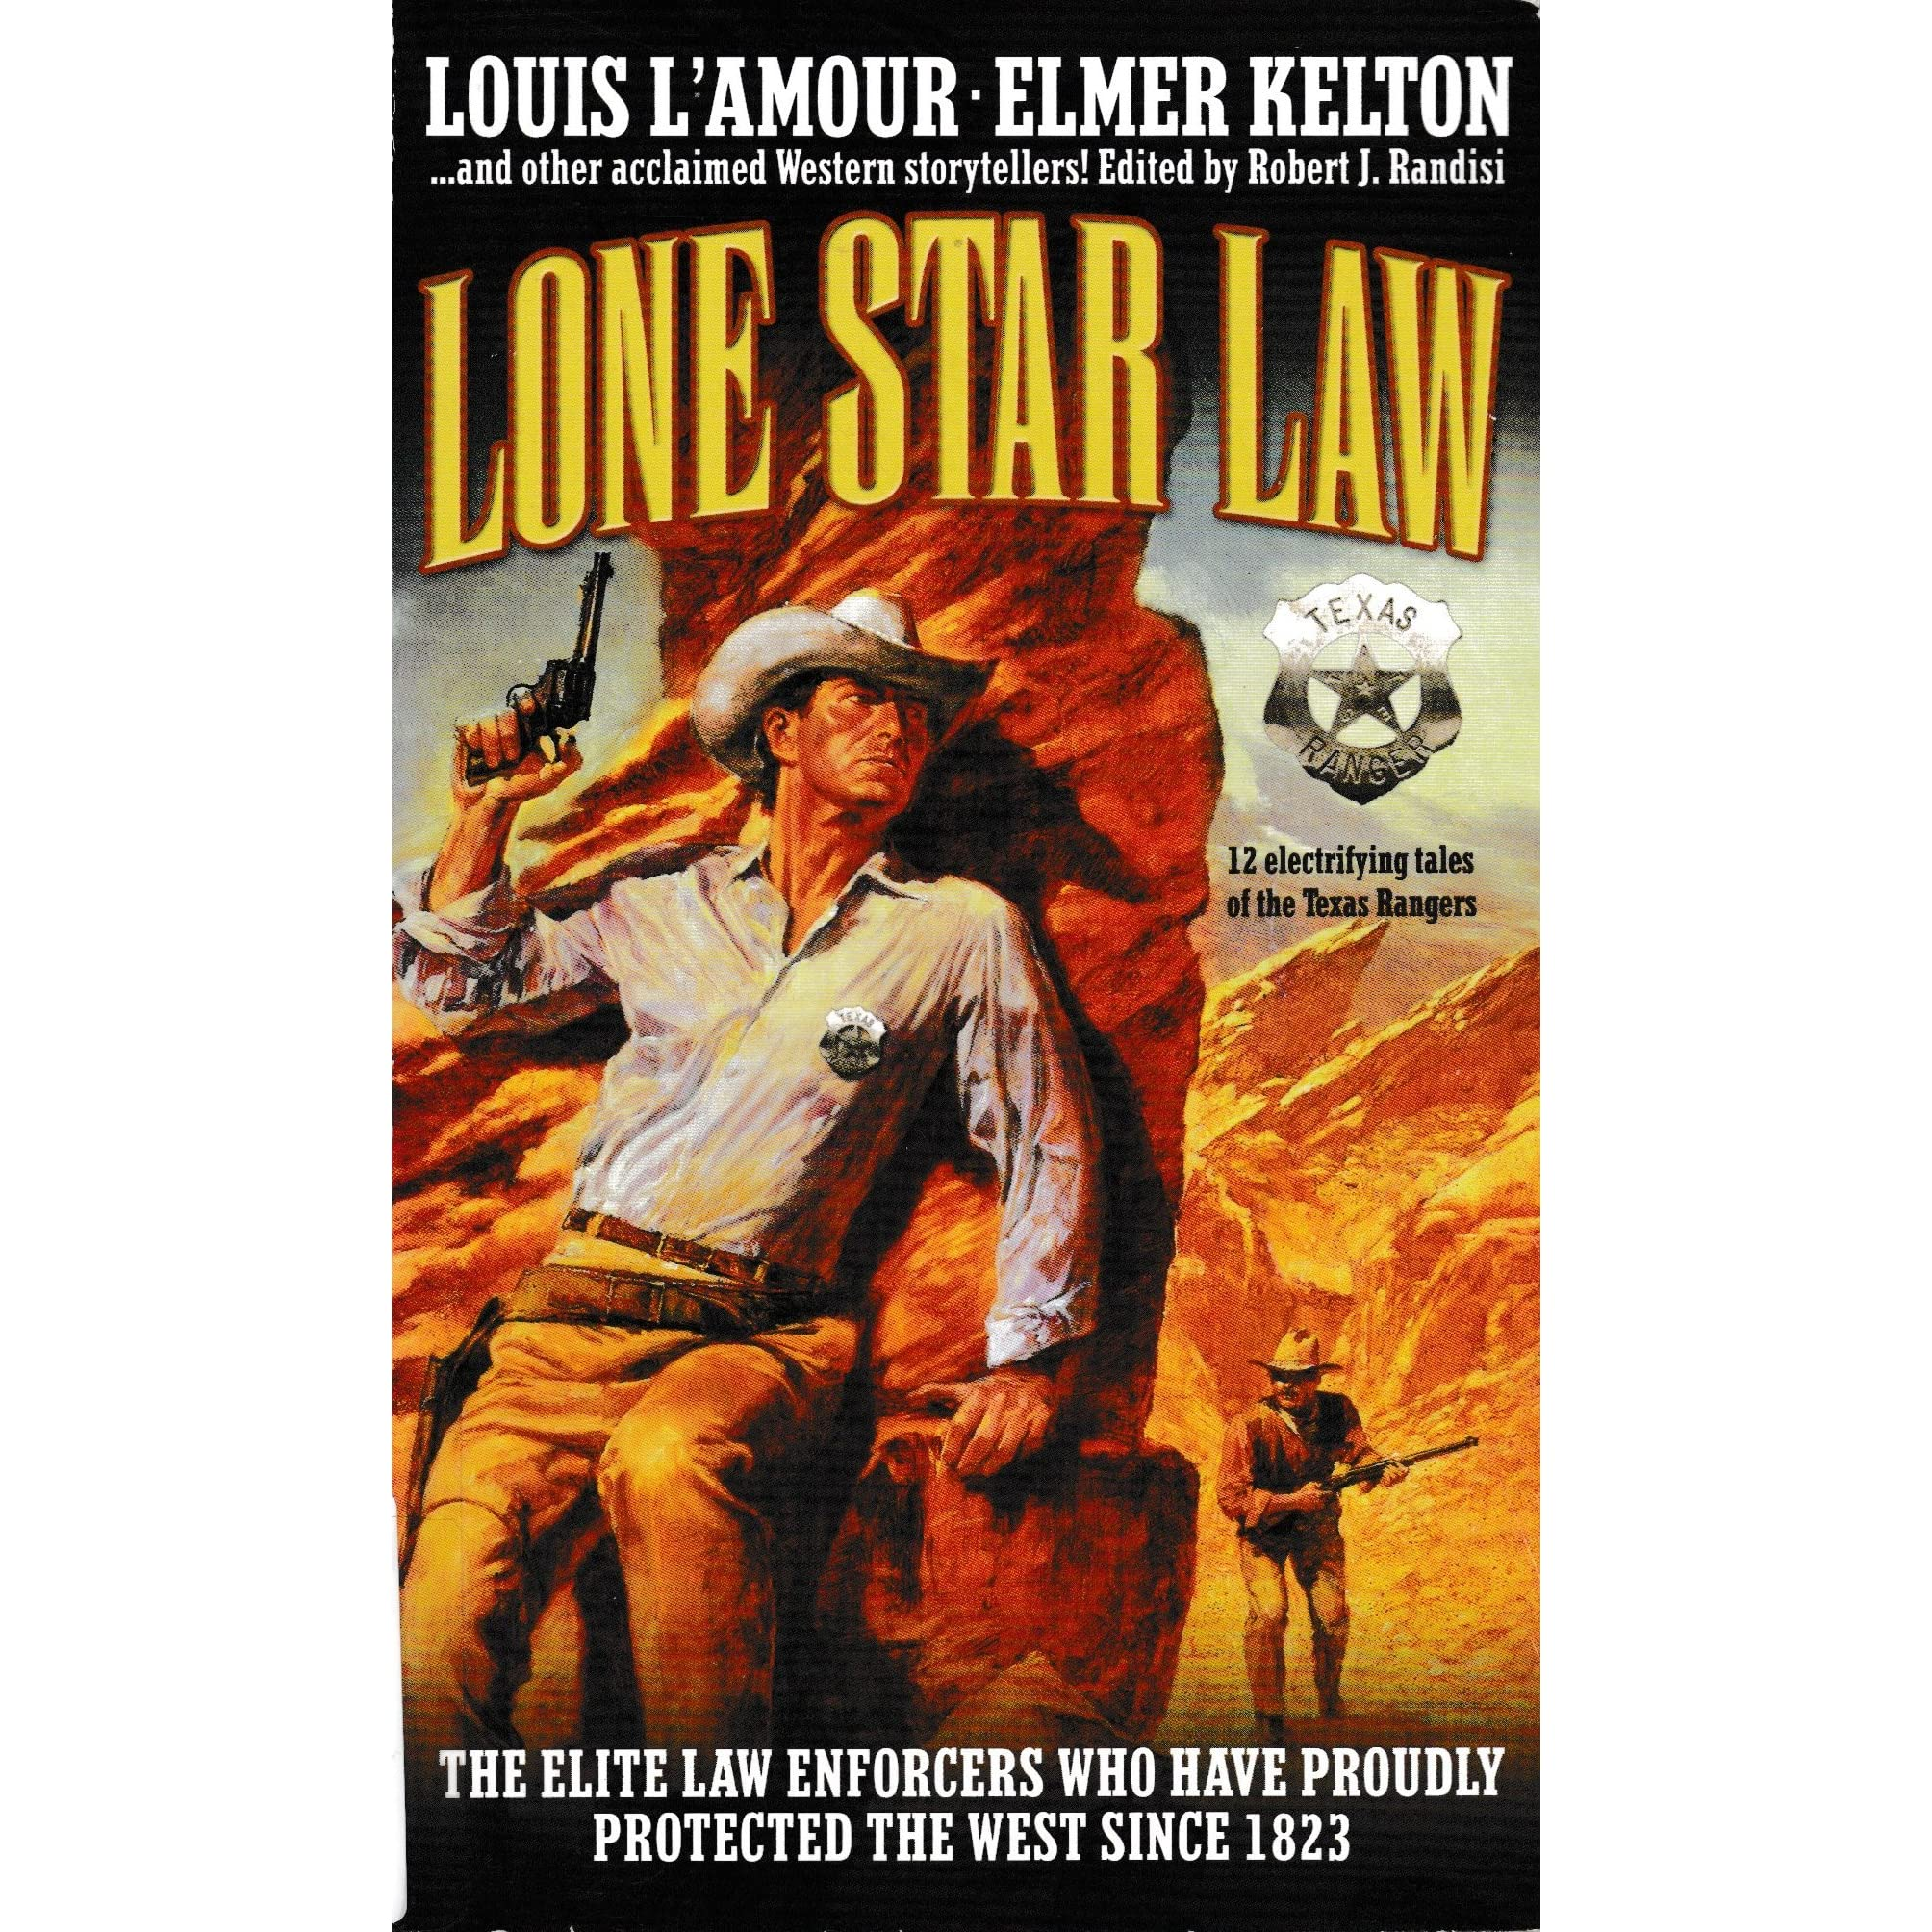 Quotes About Anger And Rage: Lone Star Law By Louis L'Amour